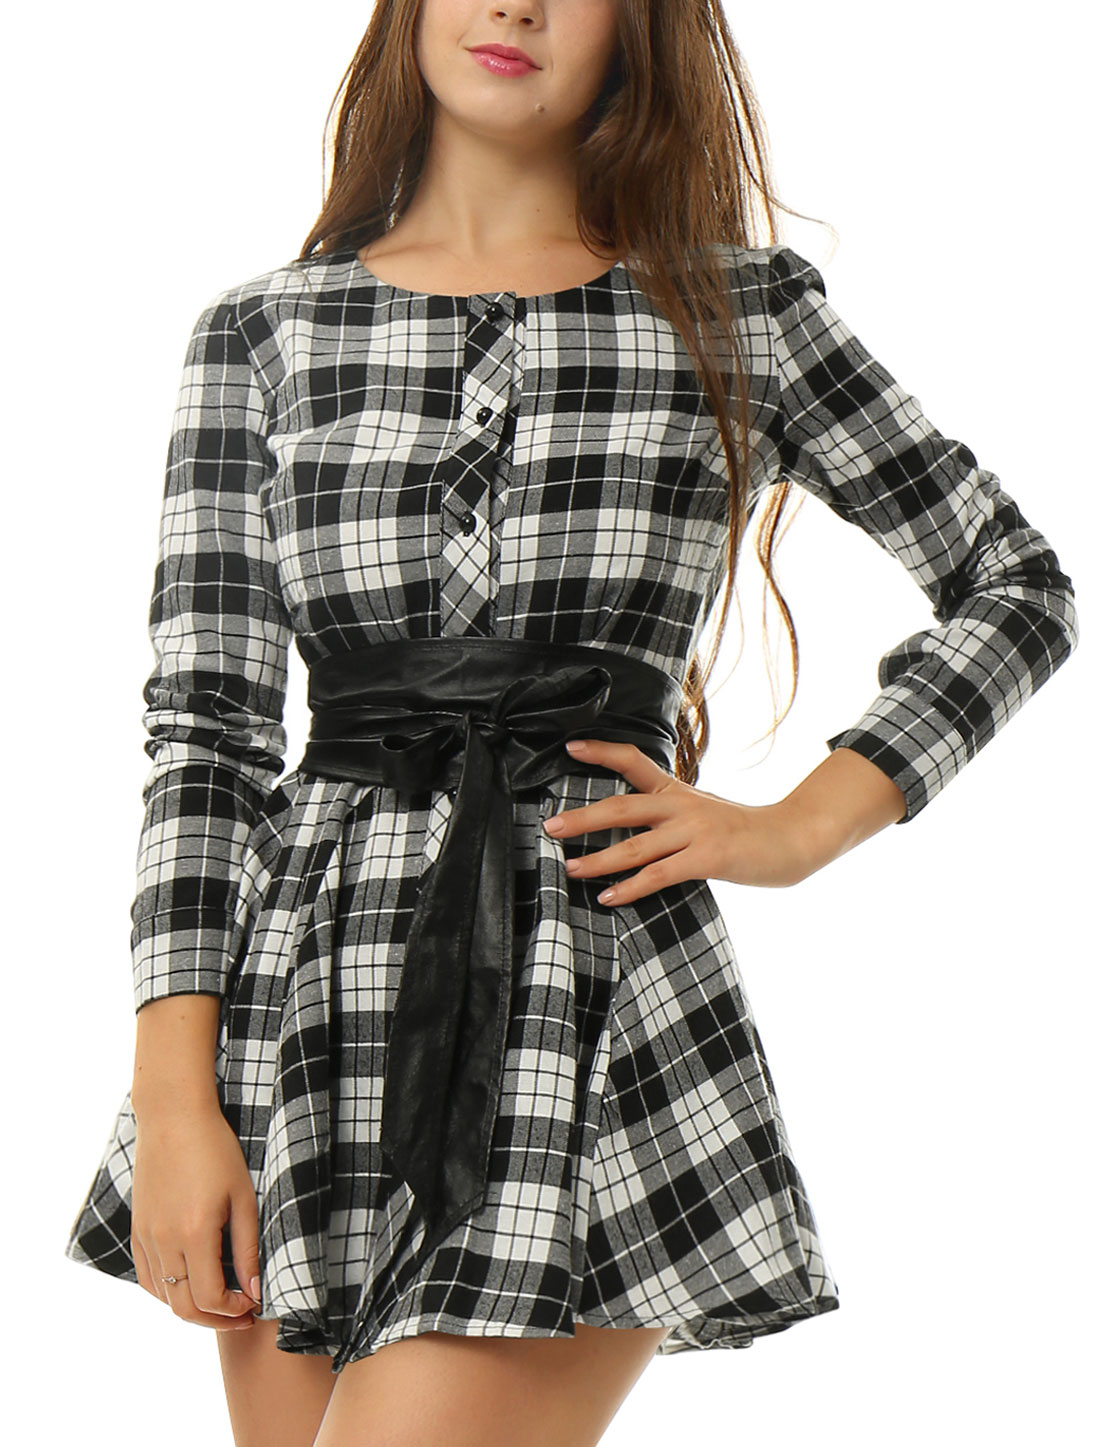 Lady Long Sleeves Plaids Pattern Casual Shirt Dress w Belt White Black S